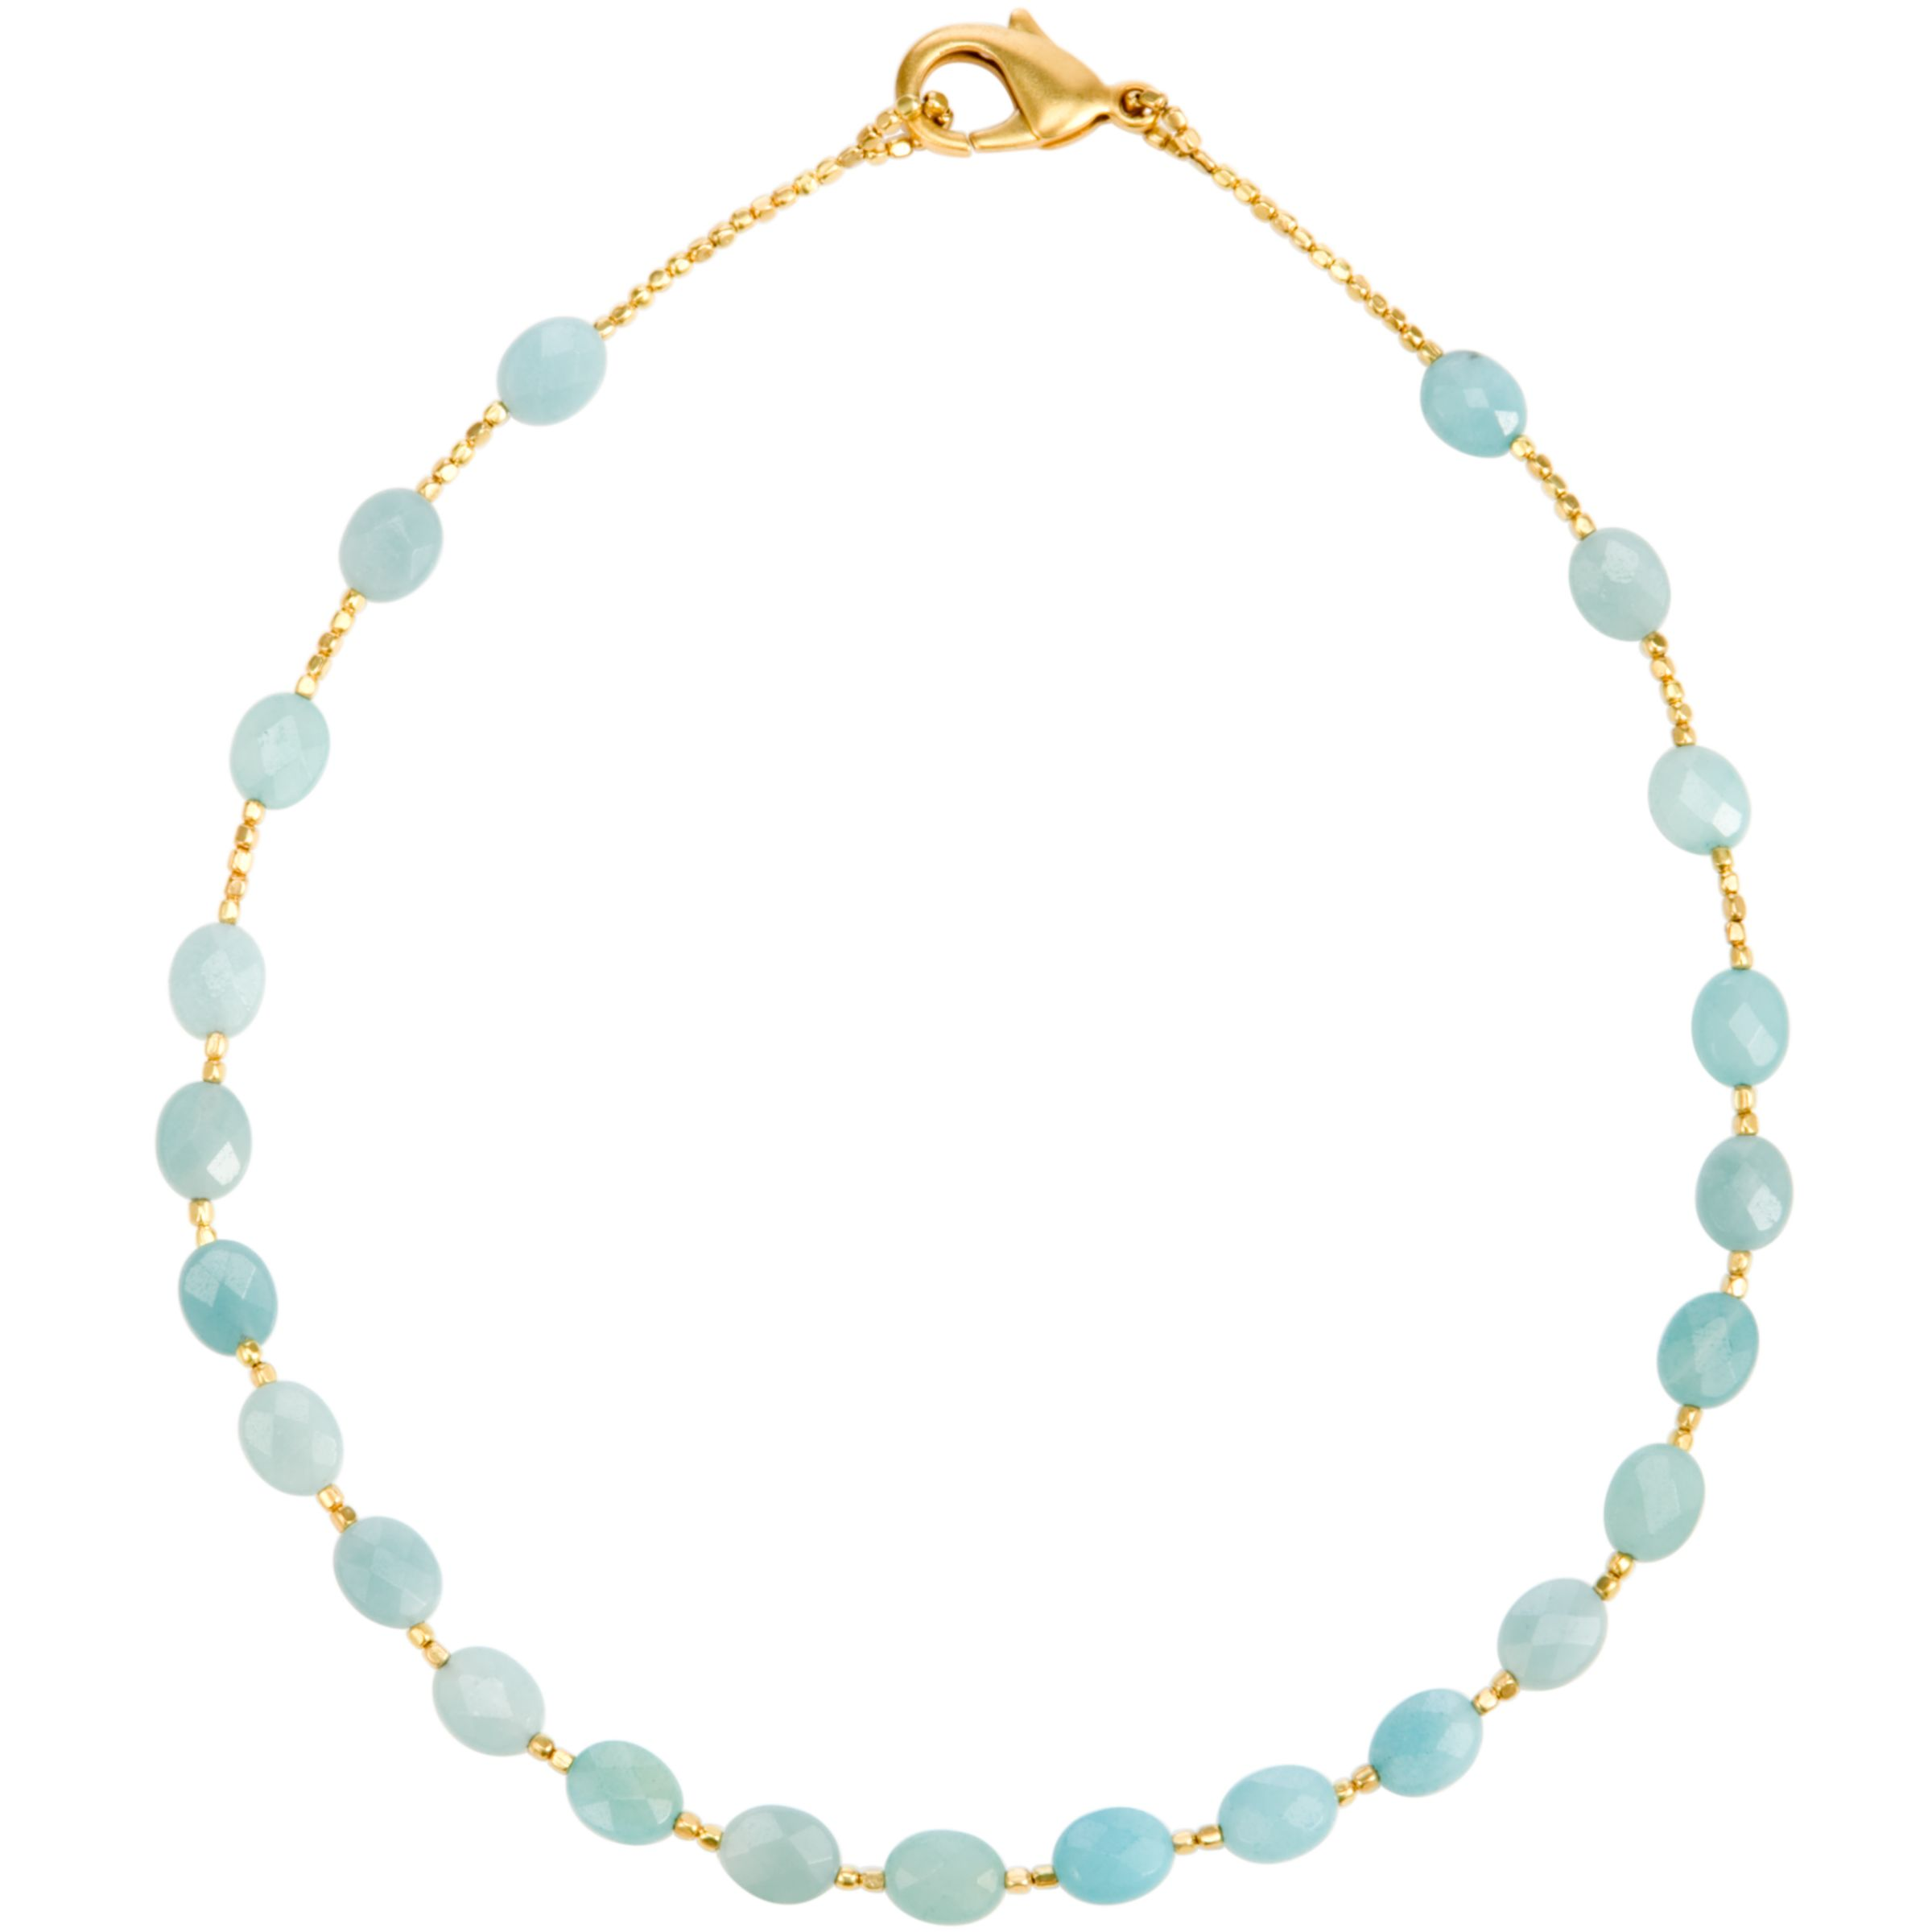 Azuni Oval Faceted Semi Precious Stone Oval Necklace, Amazonite